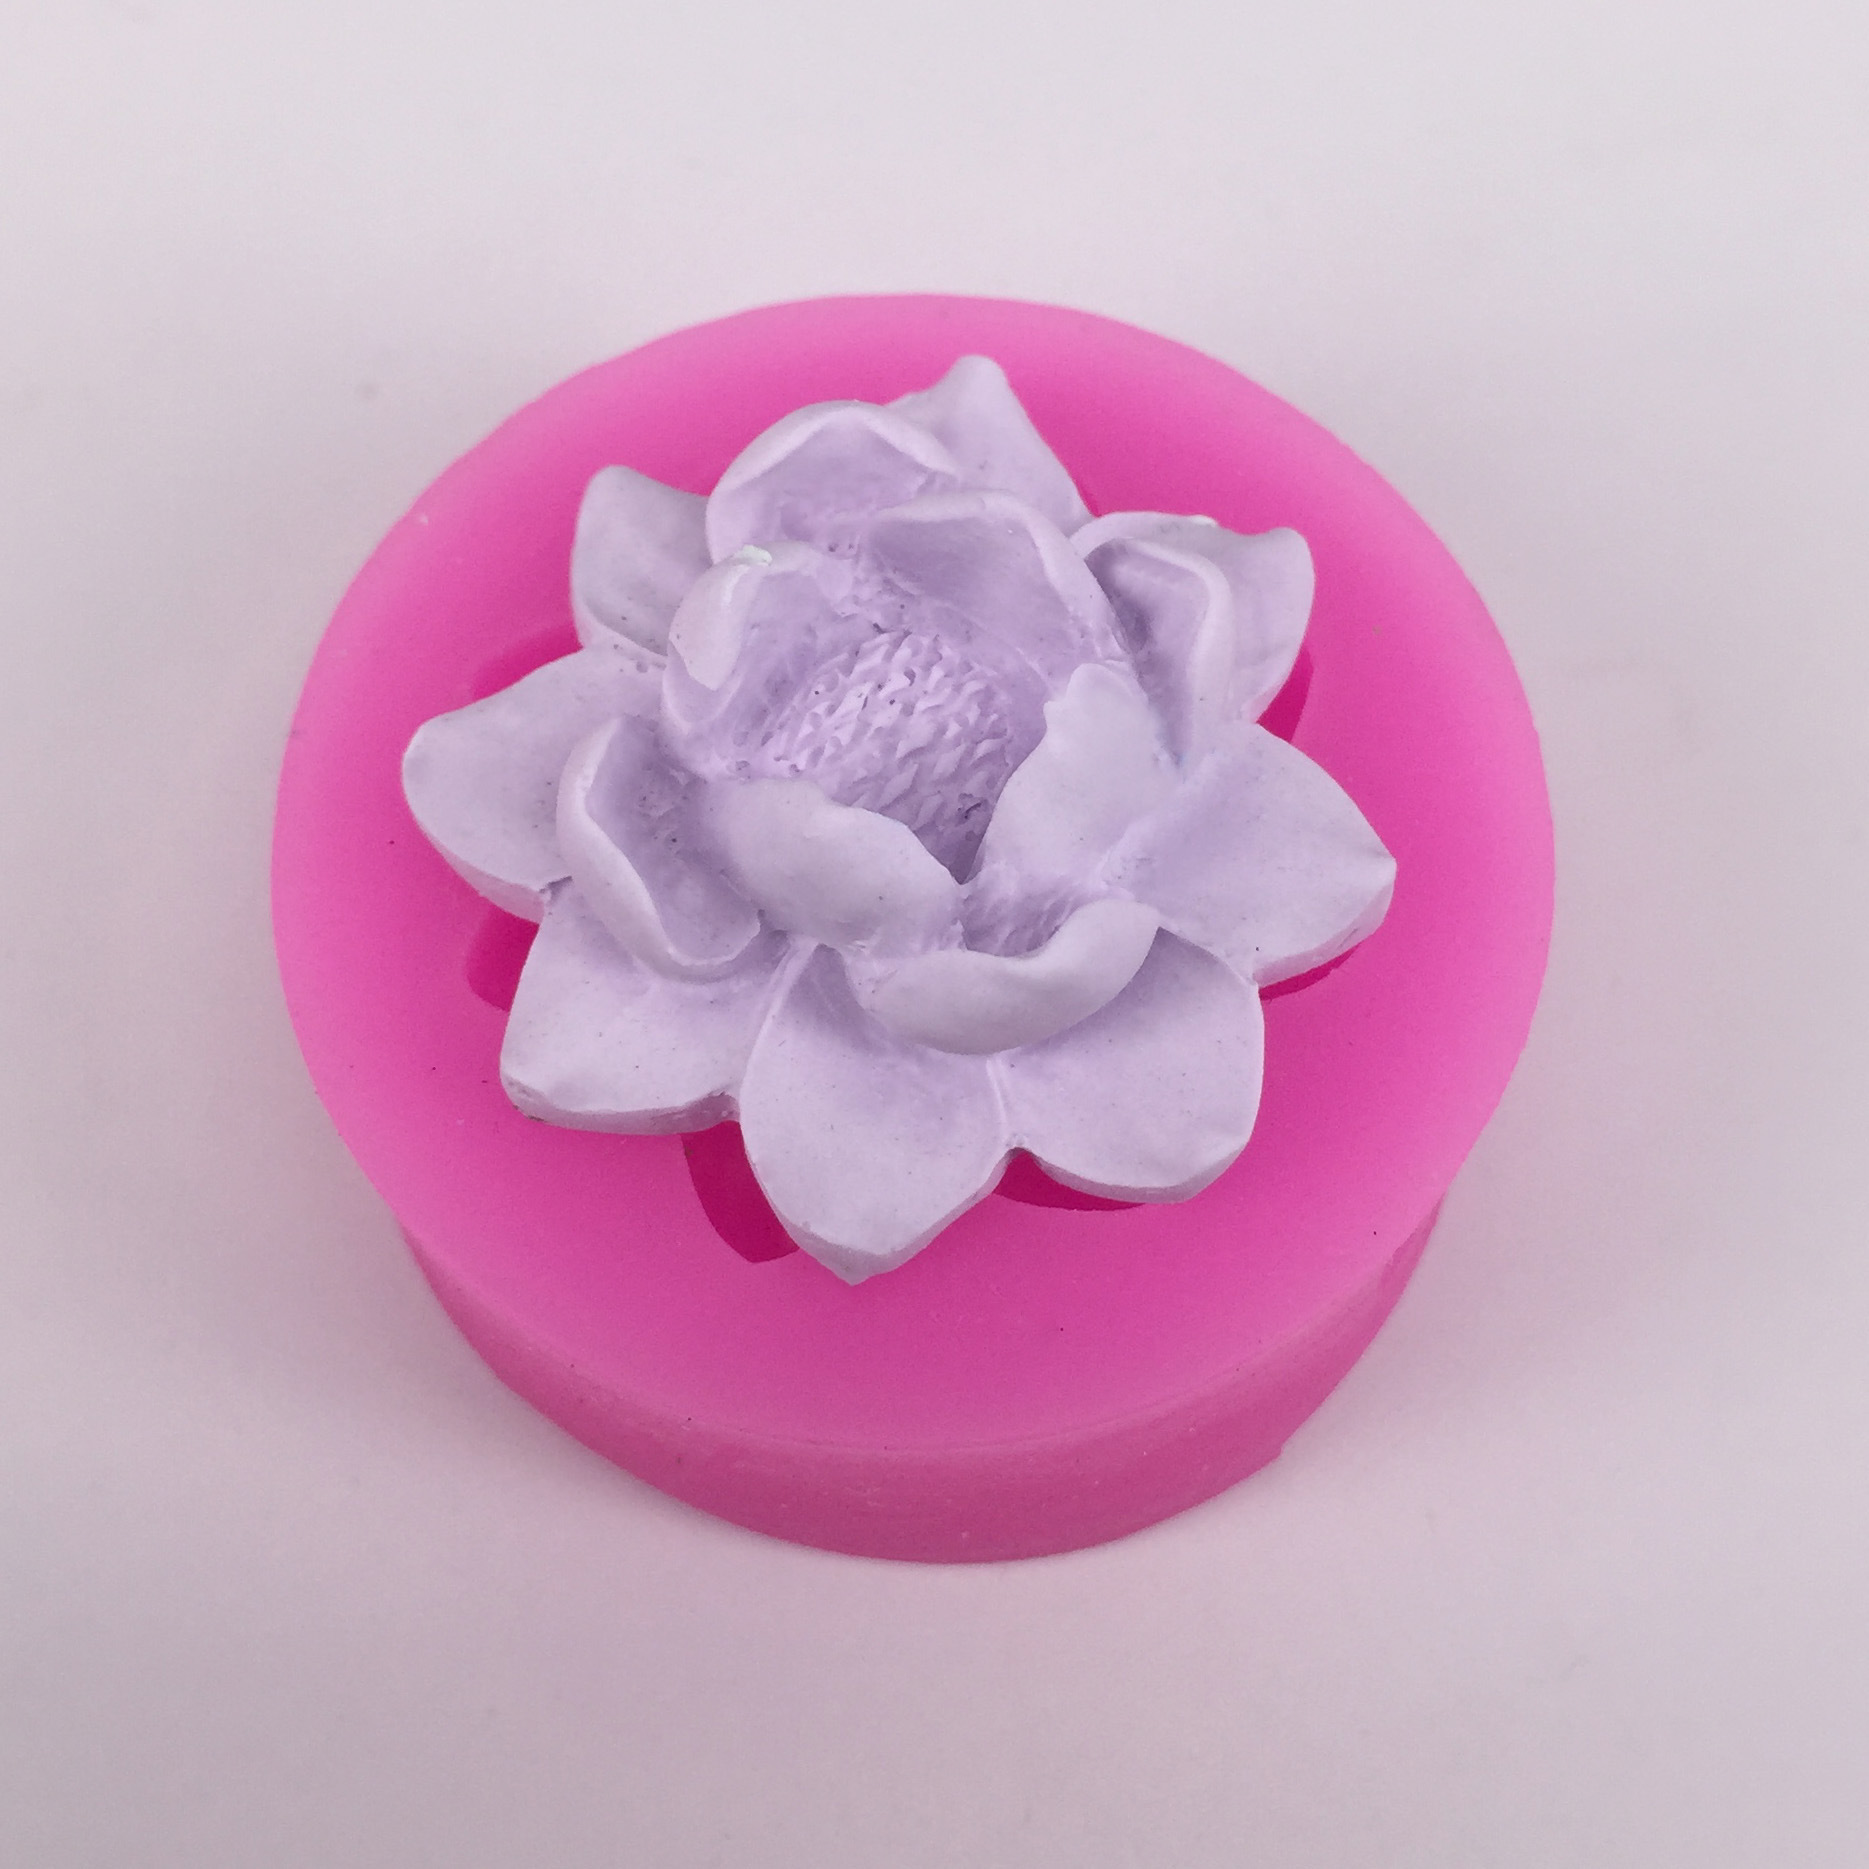 3d Lotus Flower Cake Mold Silicone Flower 3d Soap Making Mould In